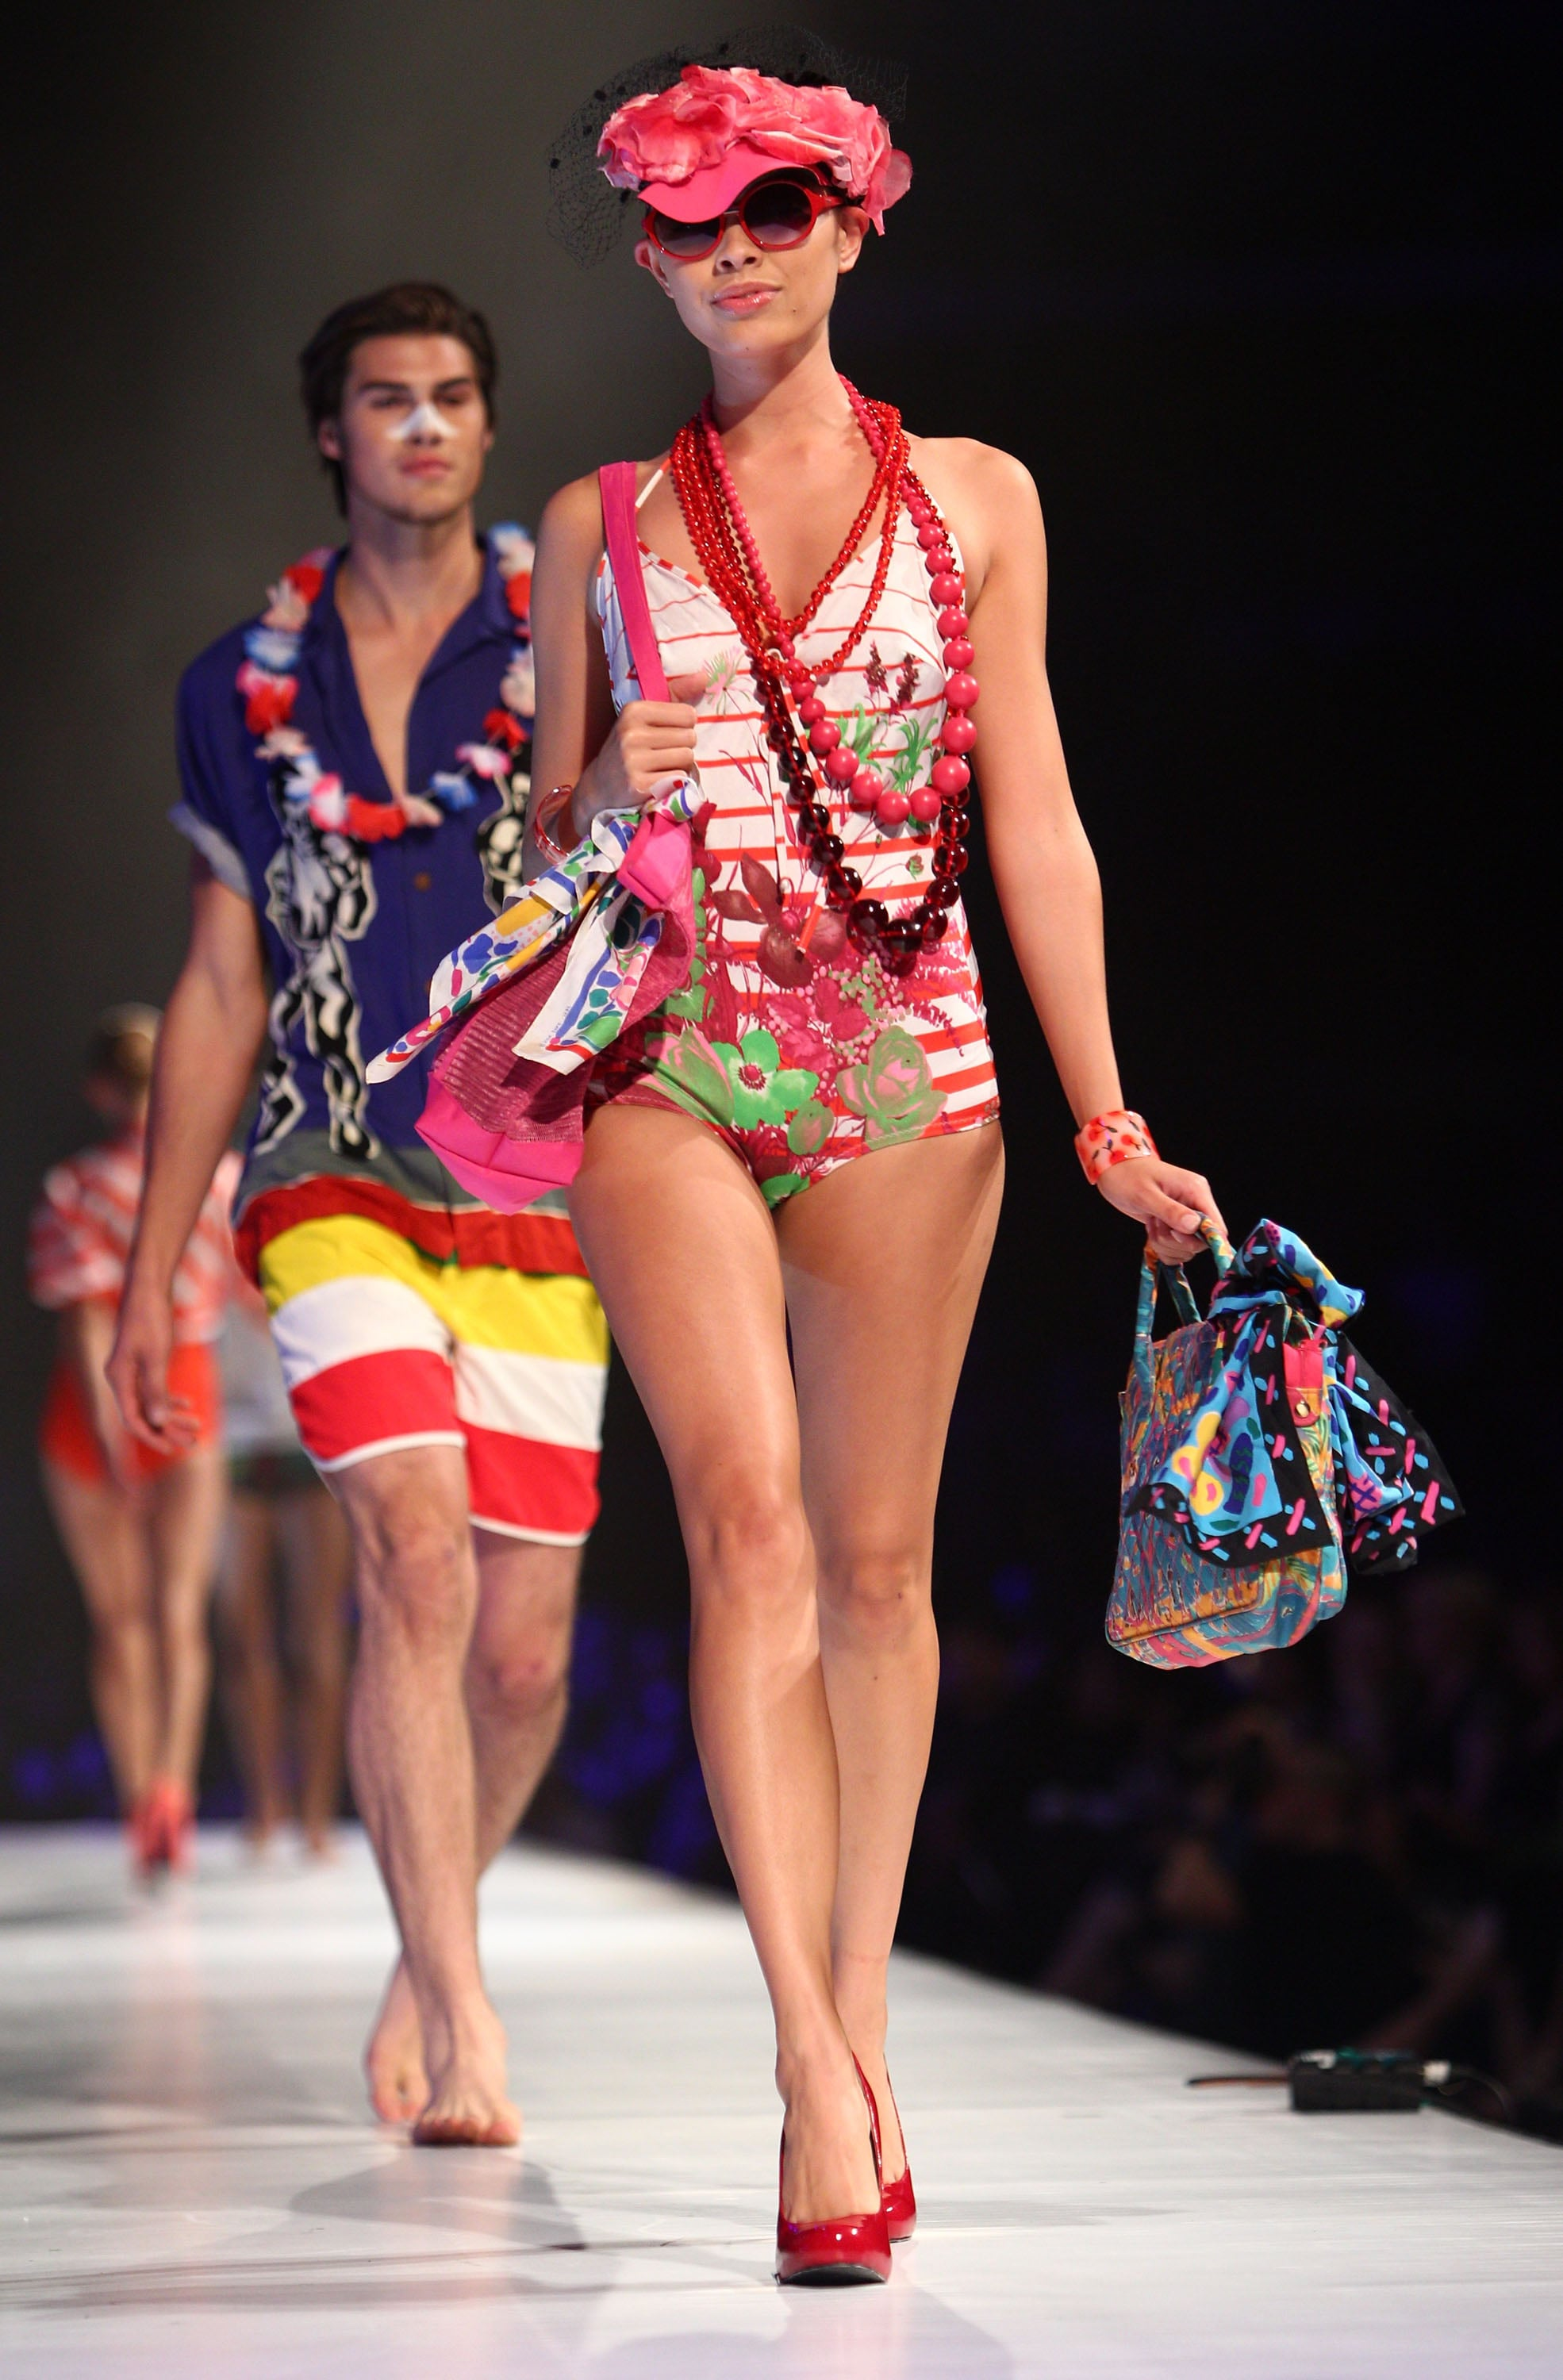 Colourful swimwear creations stood out on the runway.